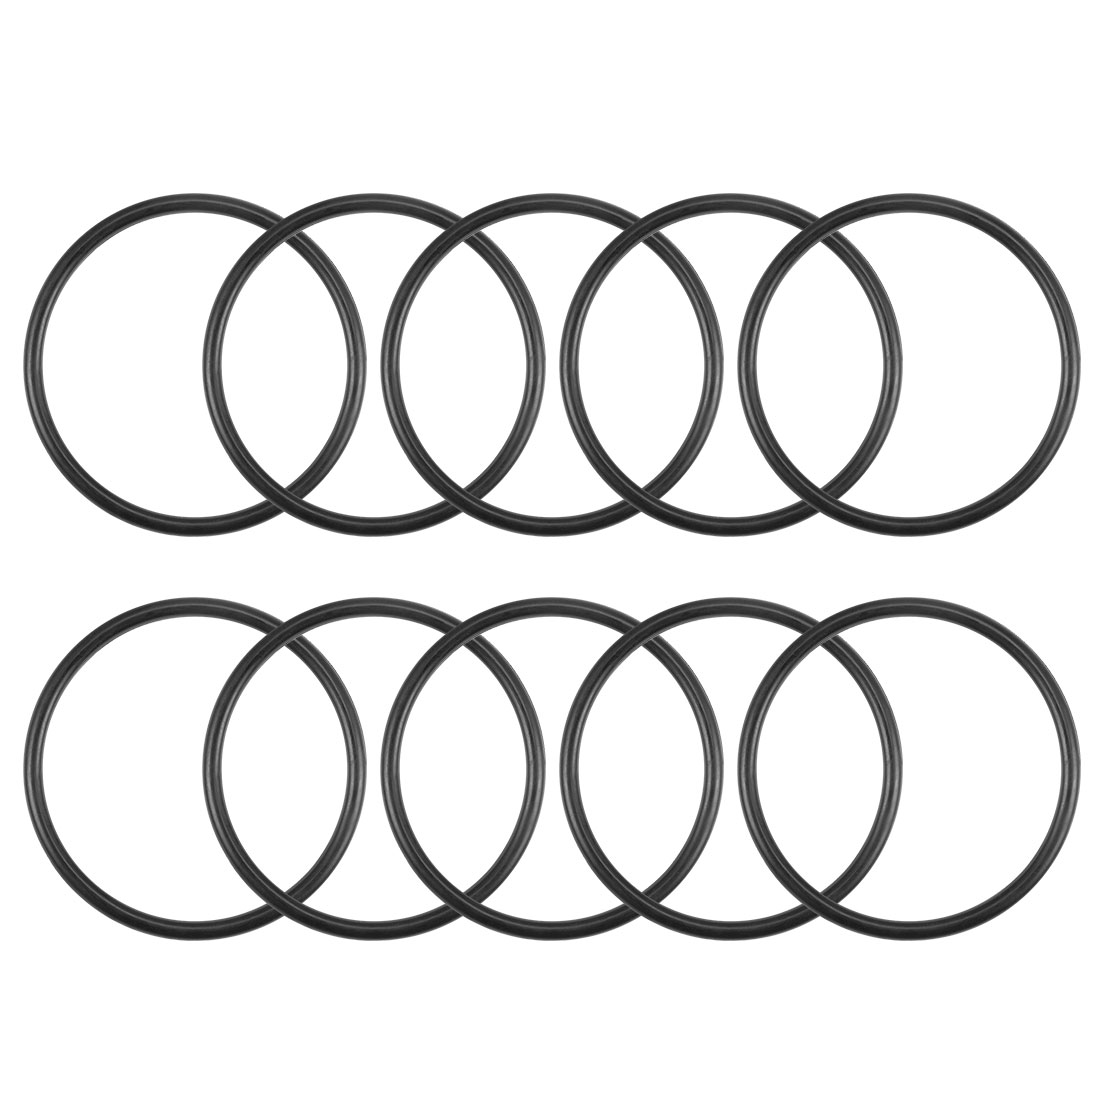 O-Rings Nitrile Rubber 25.6mm x 29.2mm x 1.8mm Round Seal Gasket 10Pcs